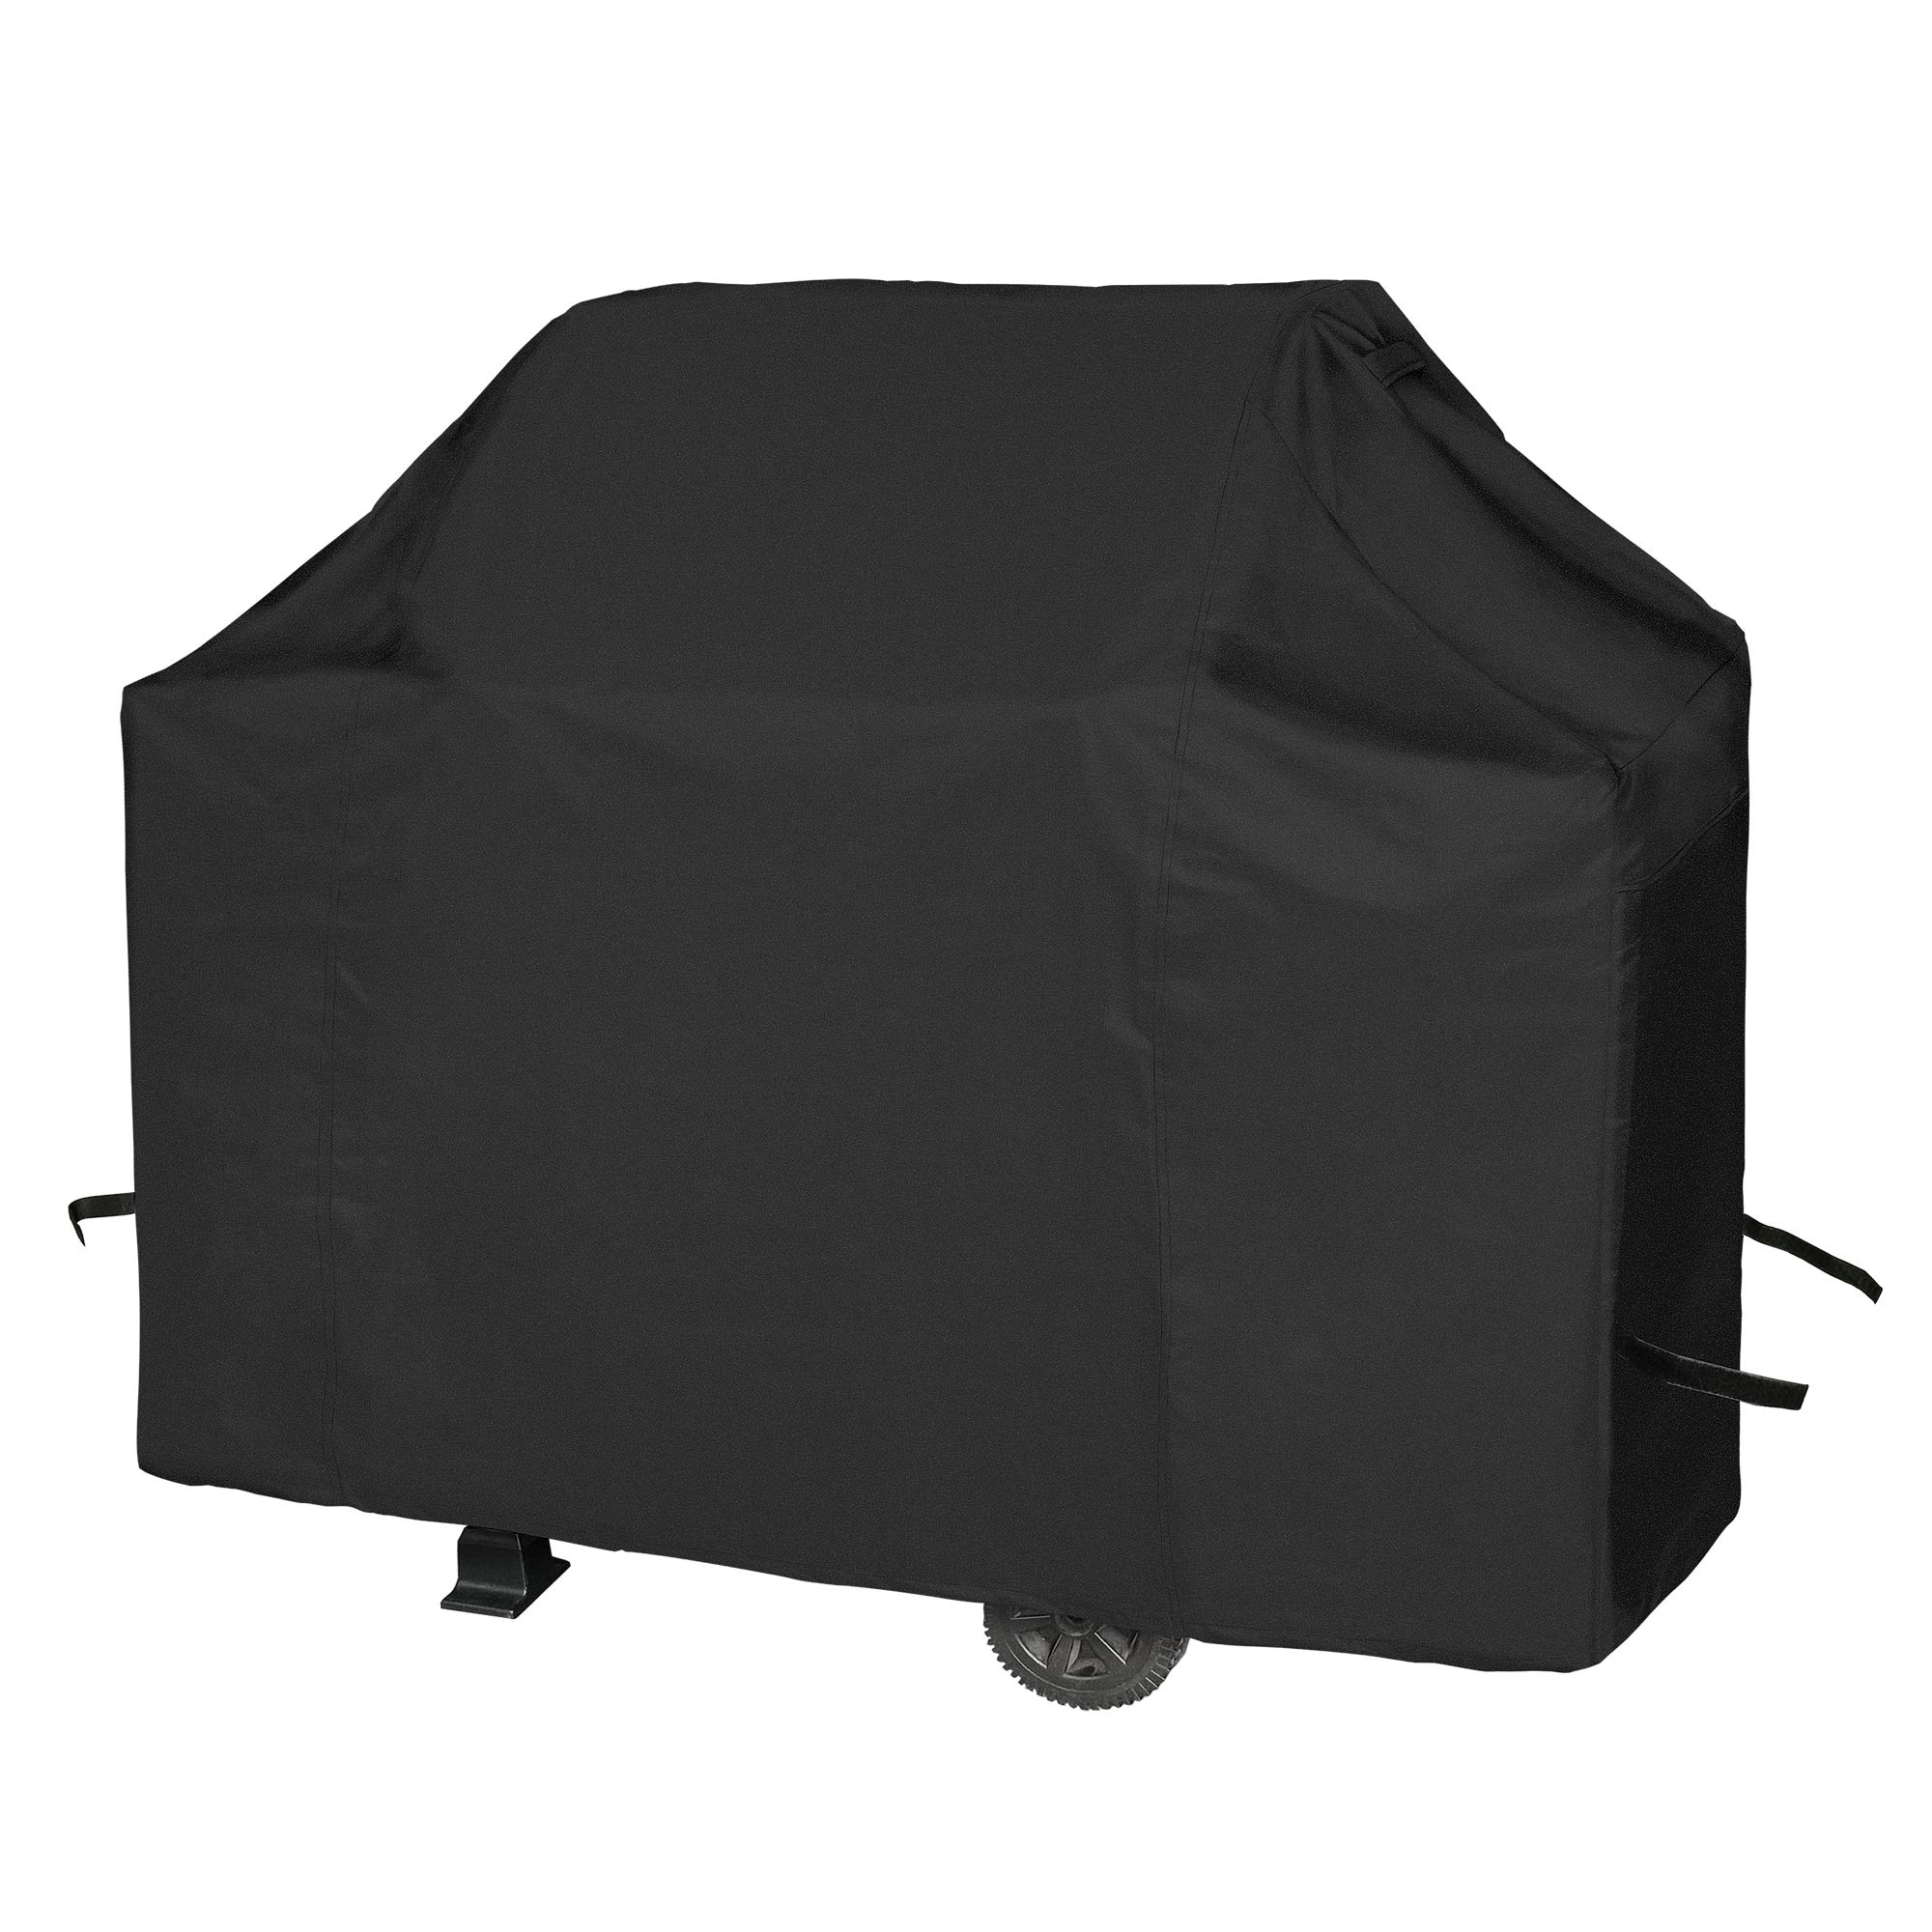 iCOVER Grill Cover 55Inch, Heavy Duty Waterproof Barbecue Gas Grill Covers, UV and Fade Resistant, Mesh Air Vent, Fits Weber Char-Broil Nexgrill and More by i COVER